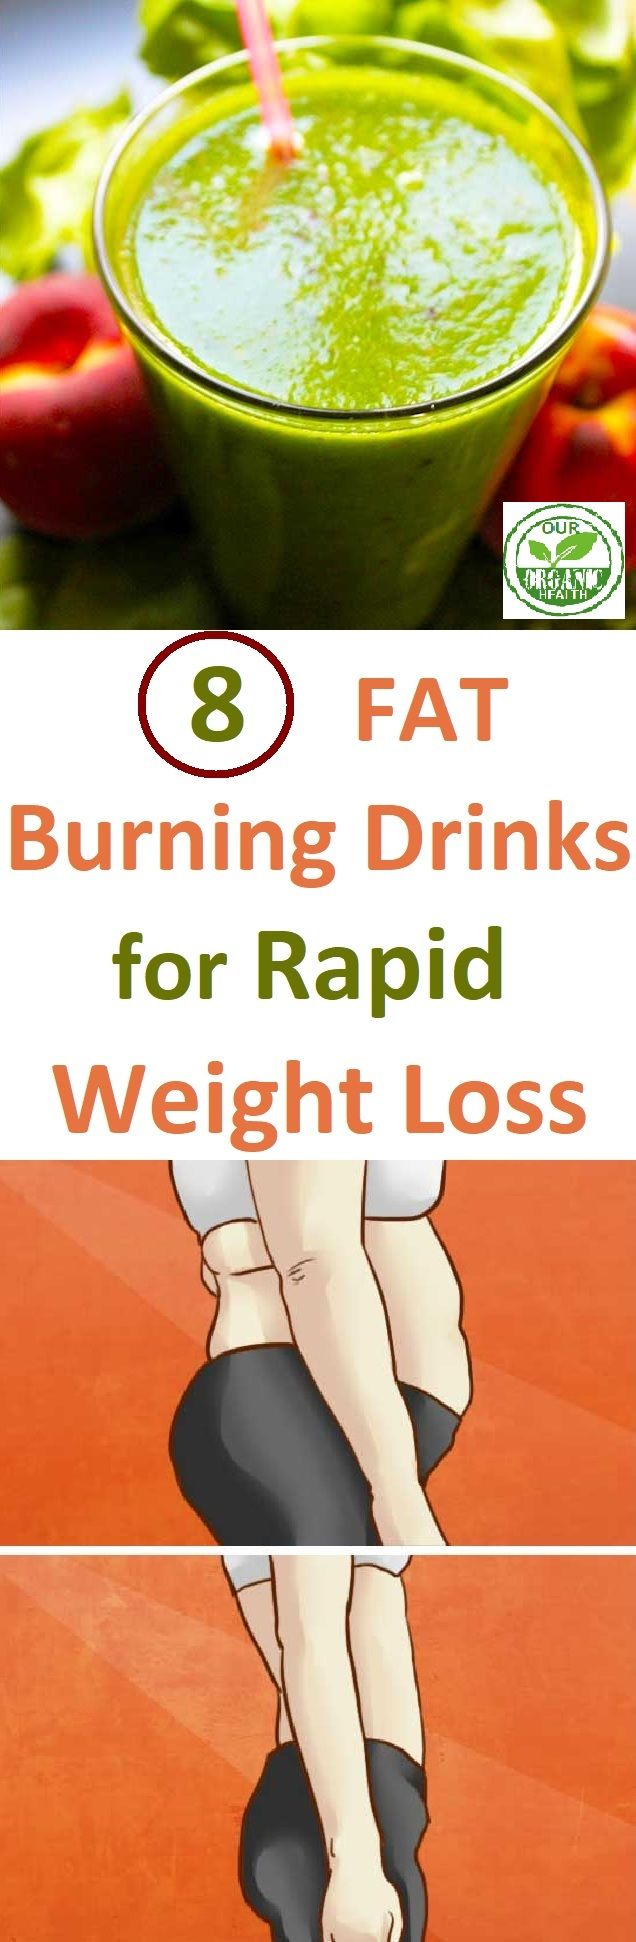 8 Fat – Burning Drinks for Rapid Weight Loss